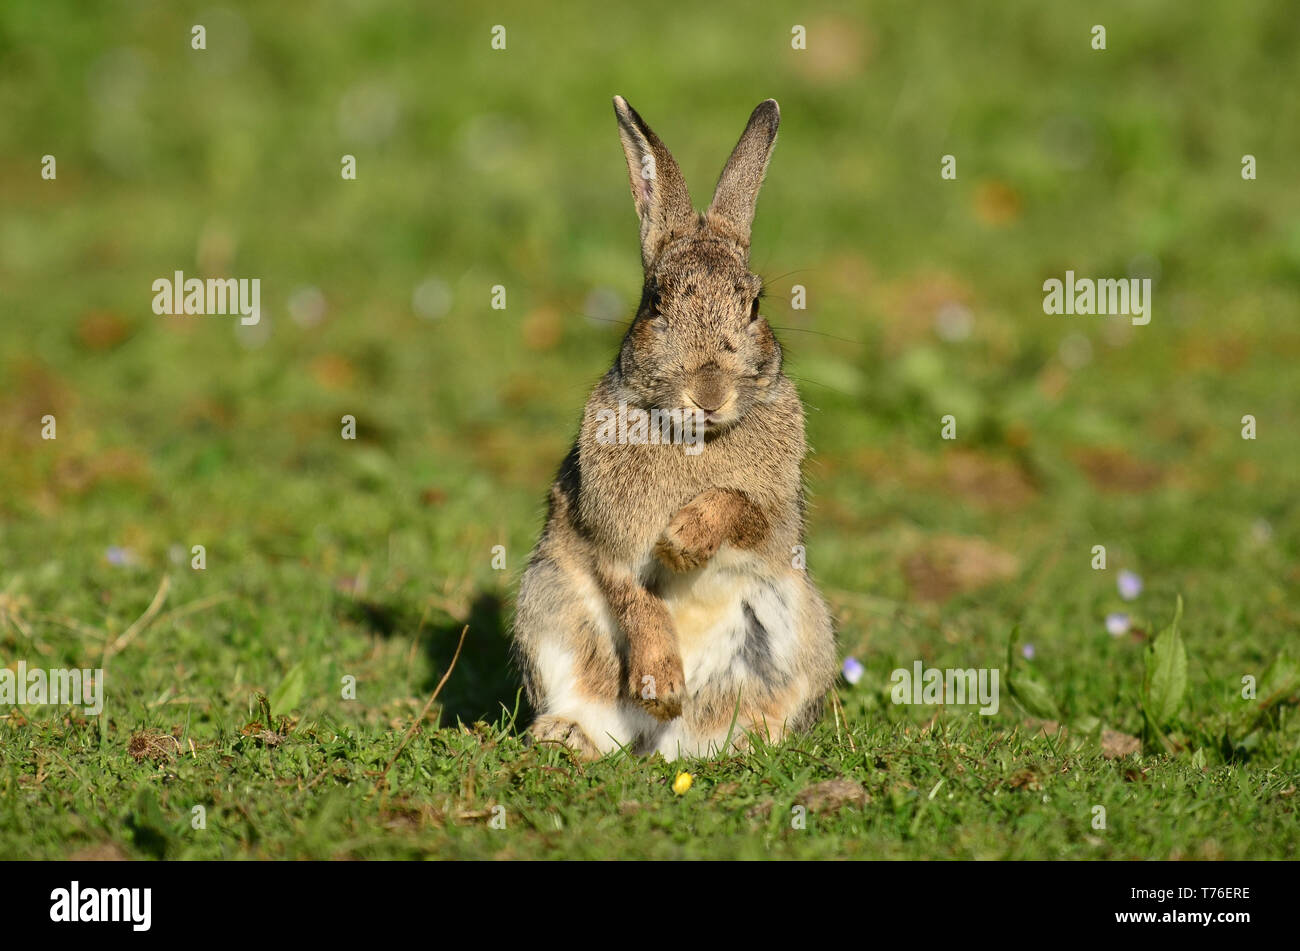 Adult Rabbit Standing On Hind Legs Stock Photo 245391090 Alamy